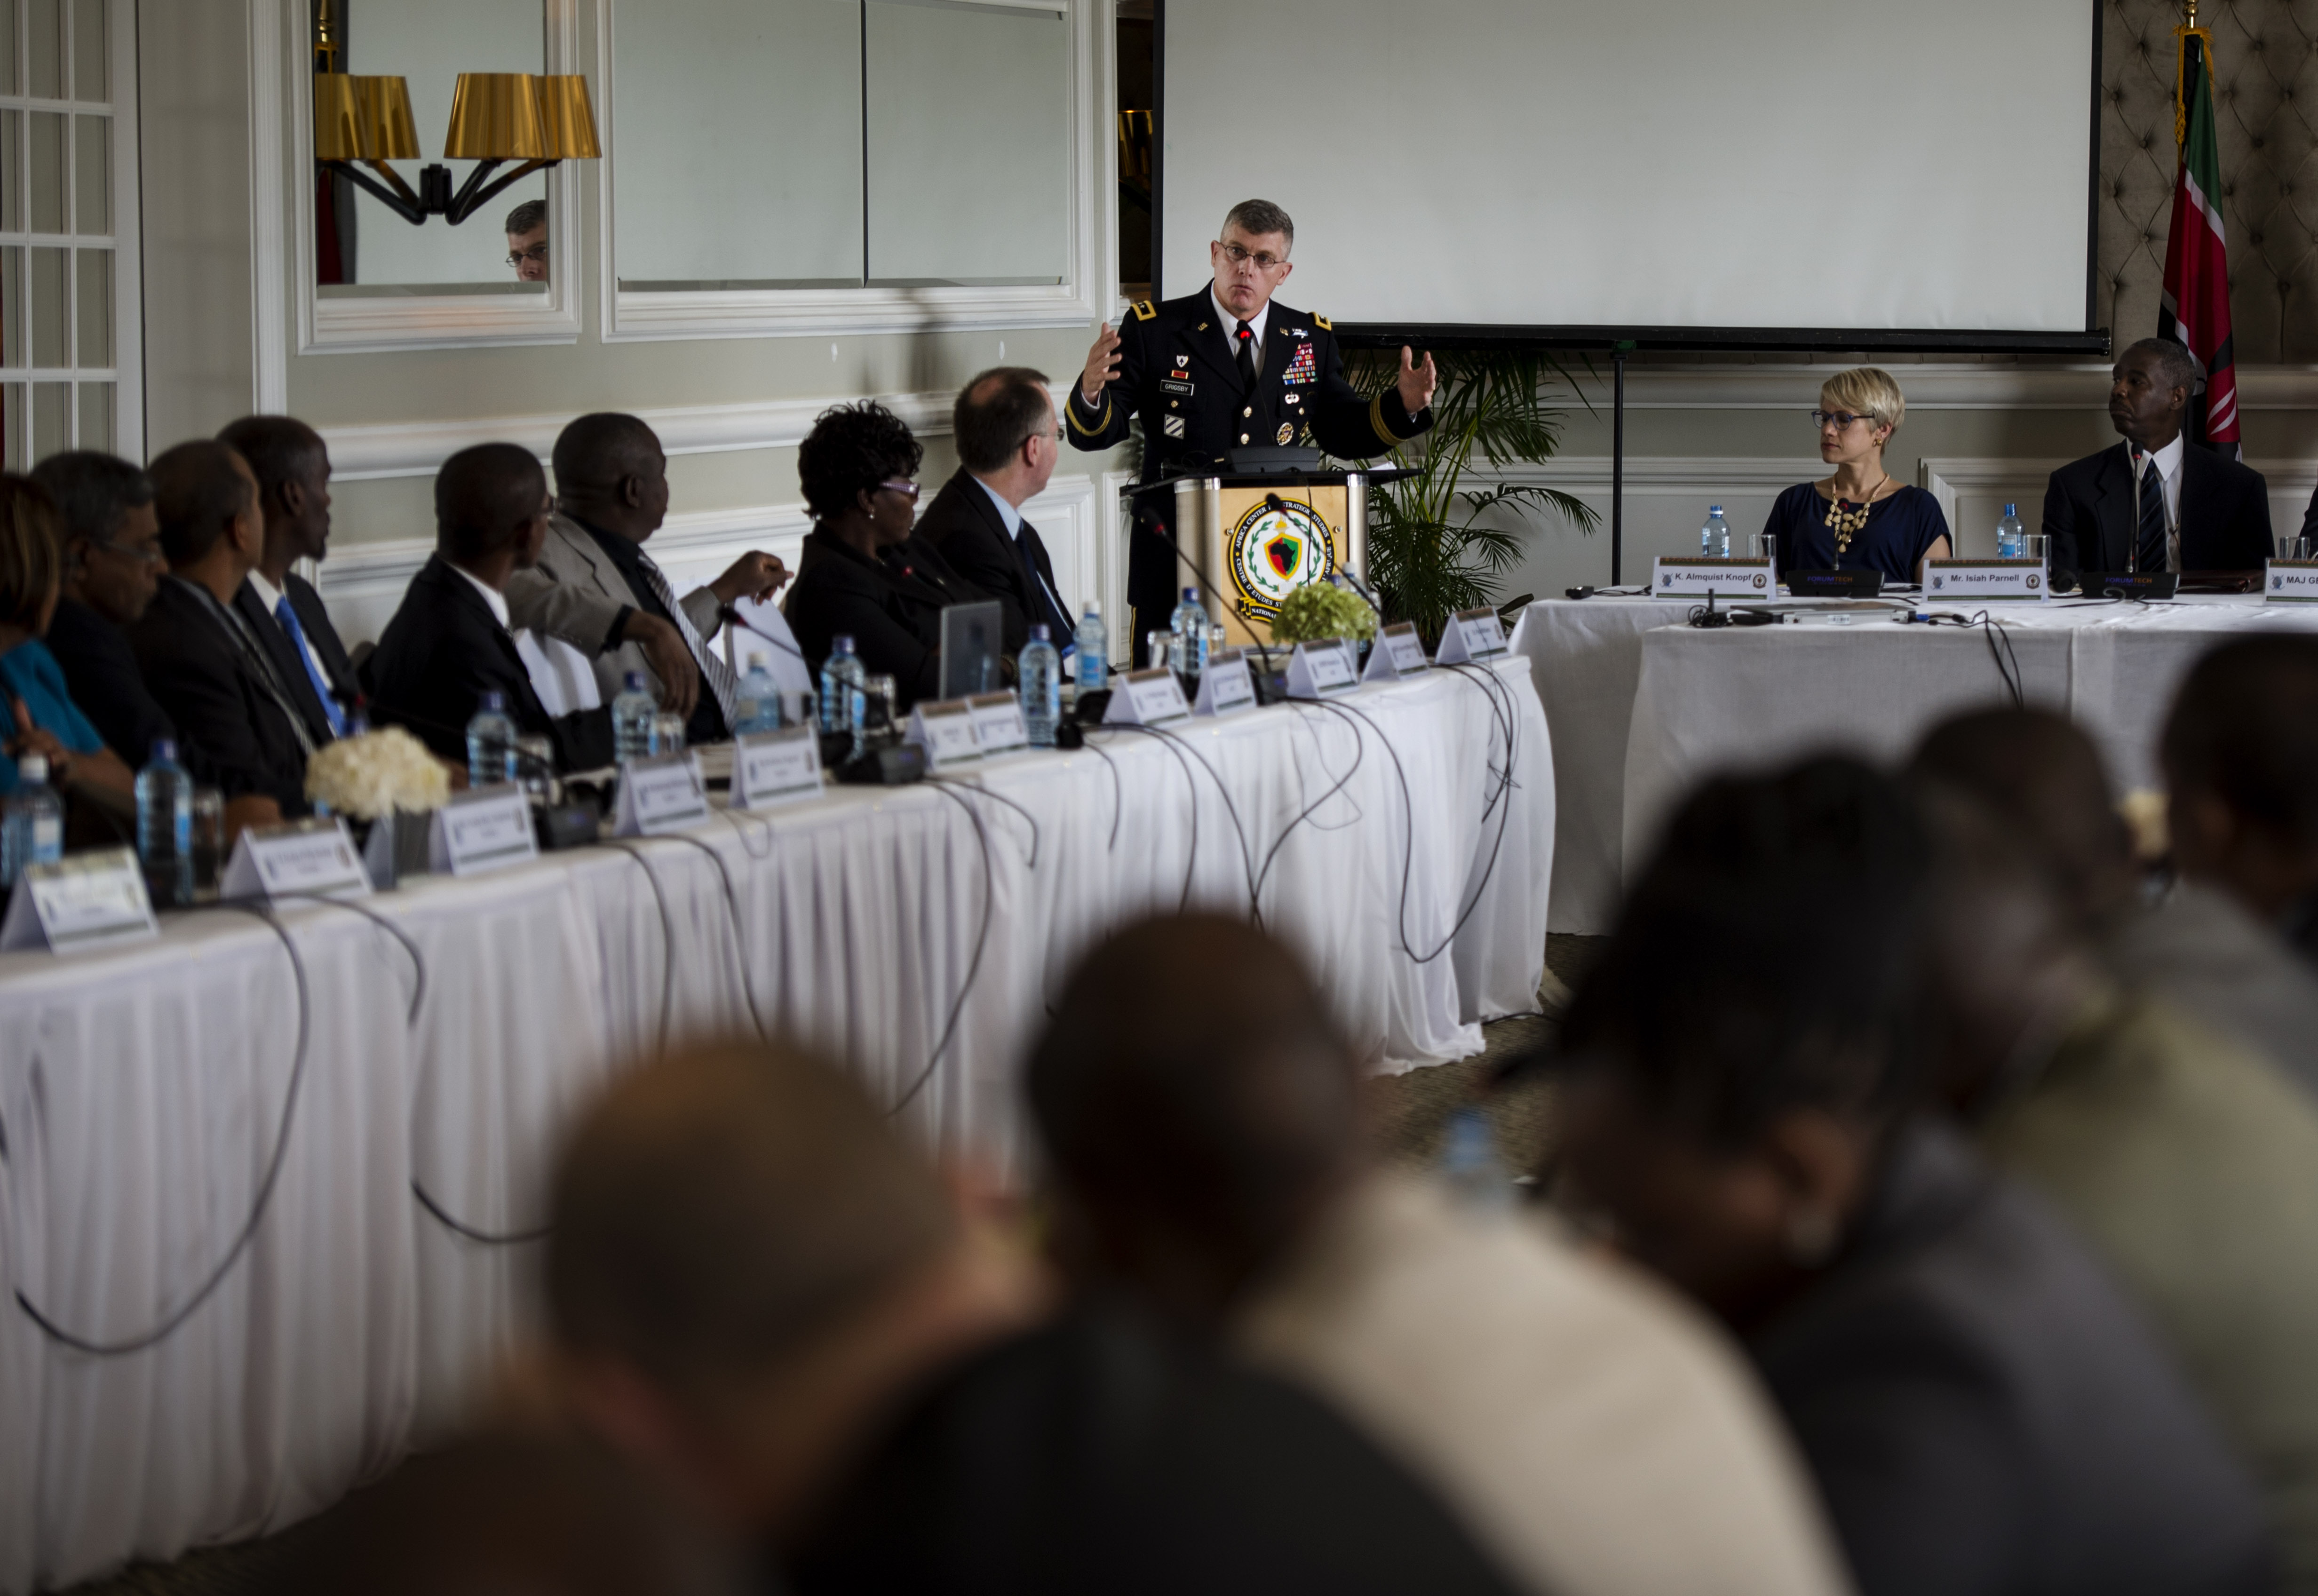 "U.S. Army Maj. Gen. Wayne W. Grigsby, Jr., Combined Joint Task Force-Horn of Africa commanding general, presents his perspective on why the Profession of Arms is vital to an organization at the Senior Leaders Summit, ""Professionalization of Forces in the Horn of Africa,"" in Nairobi, Kenya, Apr. 8, 2015. The conference brought together senior leadership from U.S. Africa Command; notably Ambassador Phillip Carter, (Deputy to the Commander for Civil-Military Engagement of United States Africa Command), CJTF-HOA and East Africa nations for a three-day conference guided around the Profession of Arms. (U.S. Air Force Photo by Staff Sgt. Carlin Leslie)"